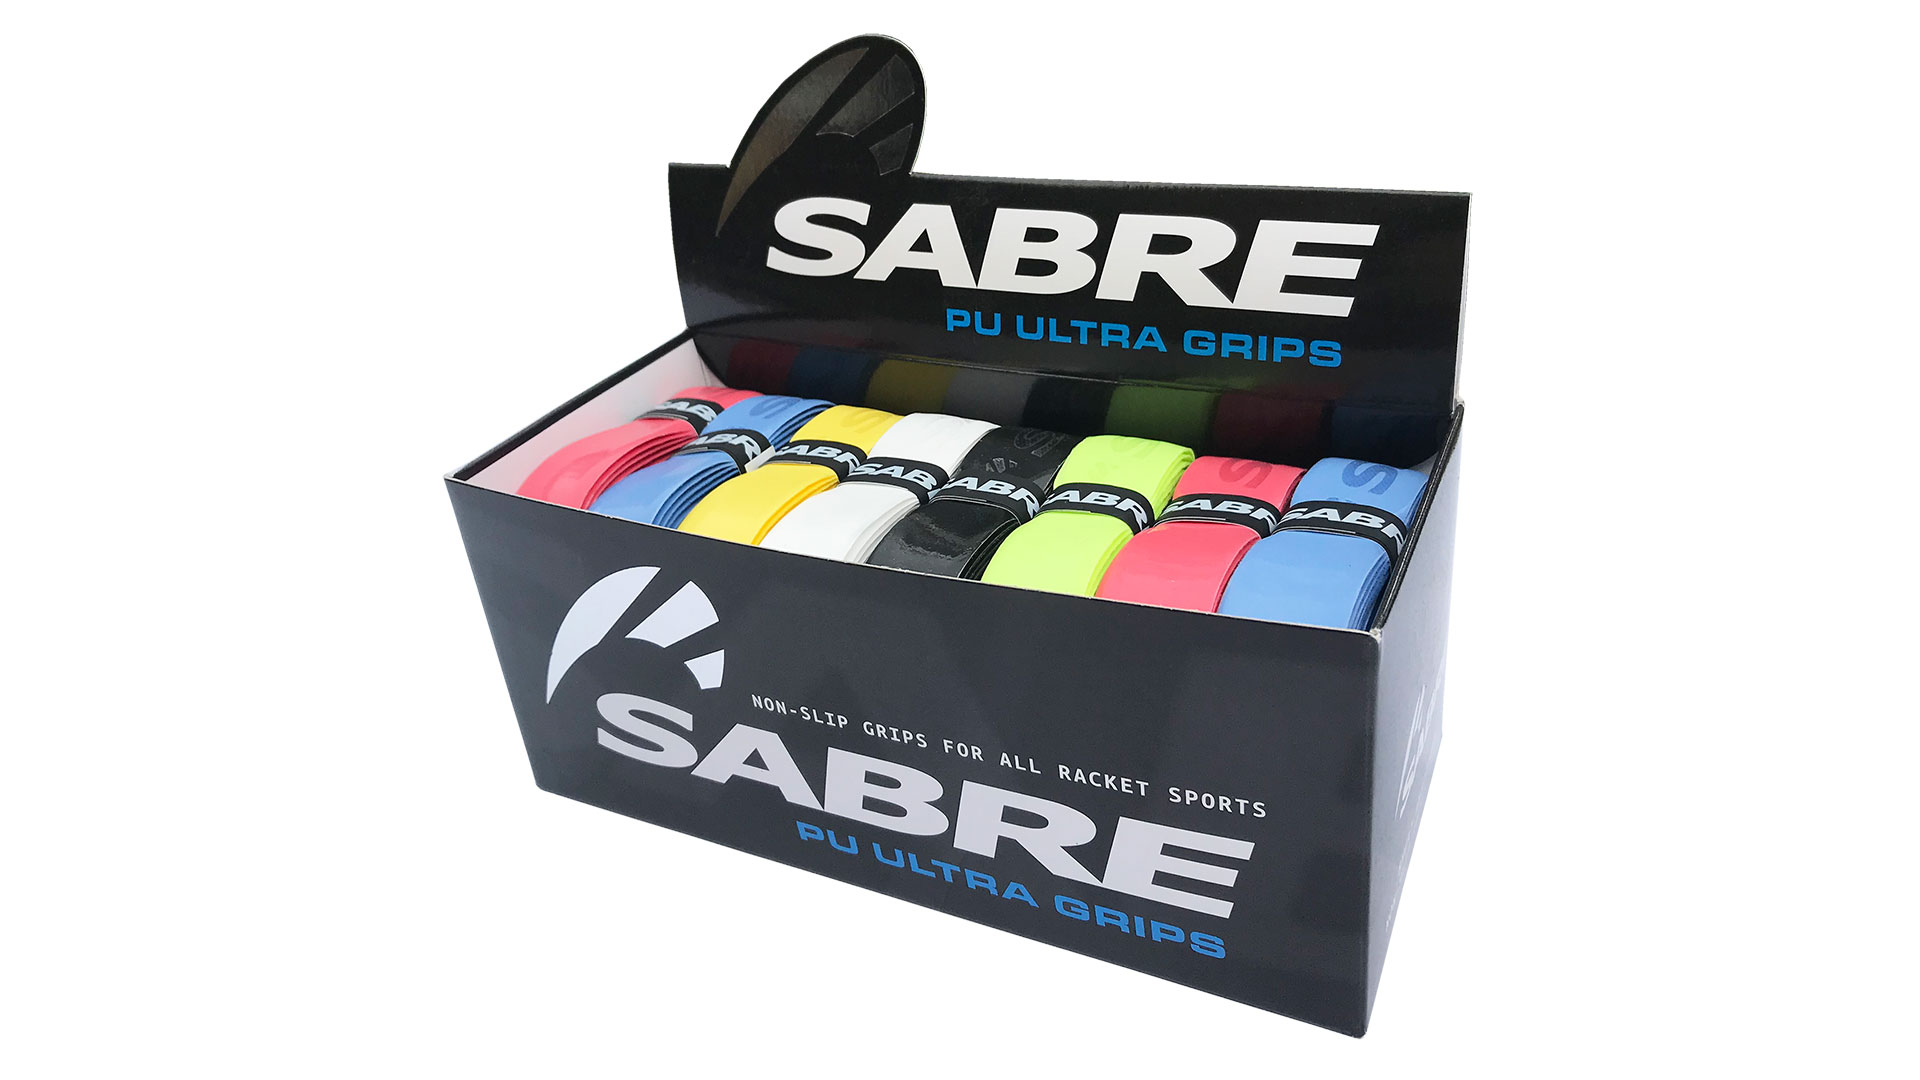 Sabre Squash Equipment